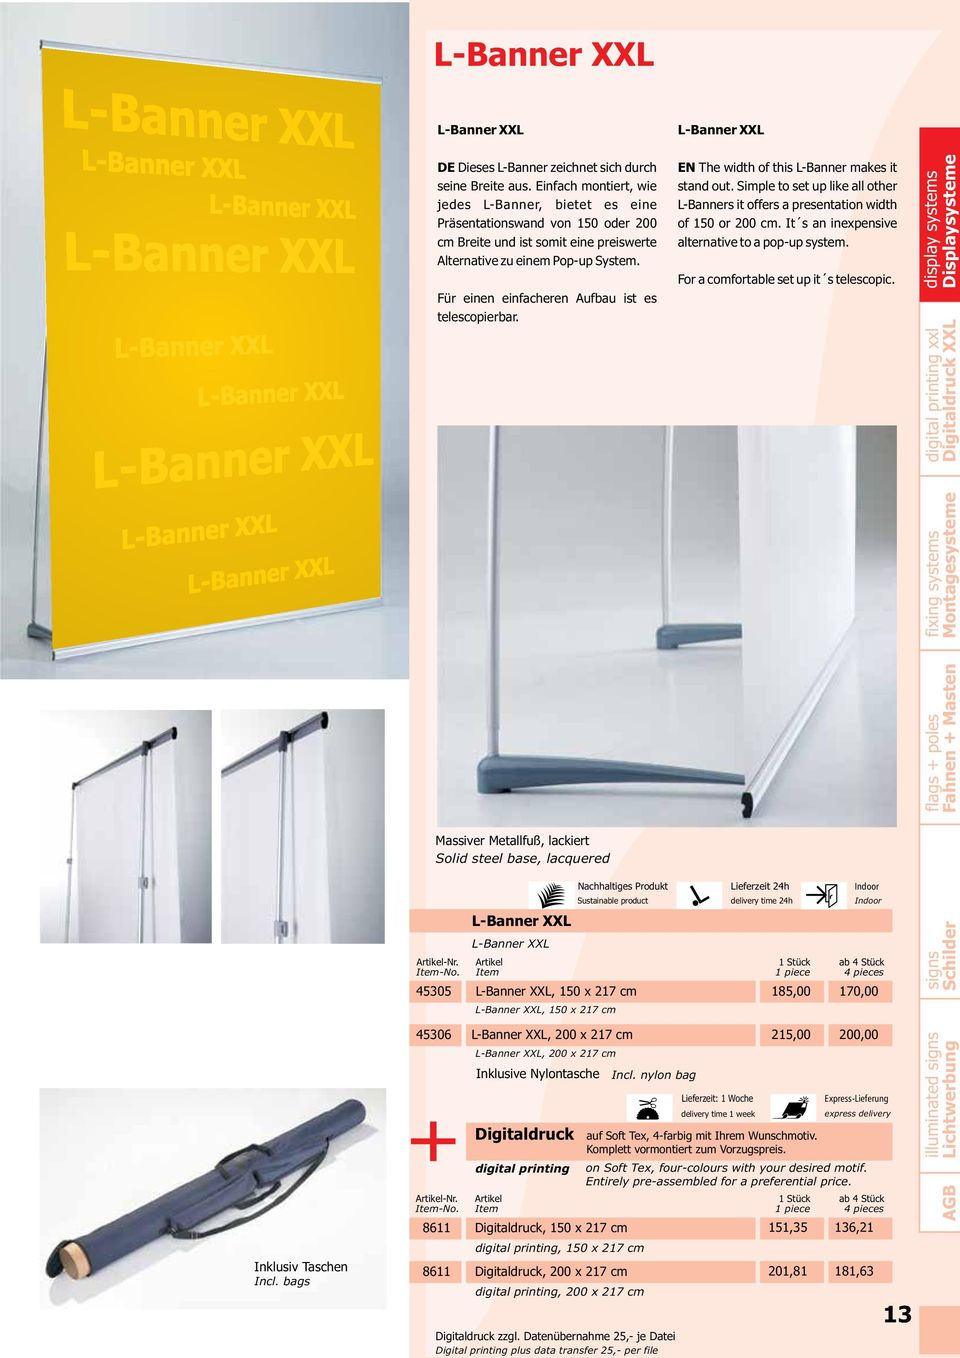 Für einen einfacheren Aufbau ist es telescopierbar. EN The width of this L-Banner makes it stand out. Simple to set up like all other L-Banners it offers a presentation width of 150 or 200 cm.